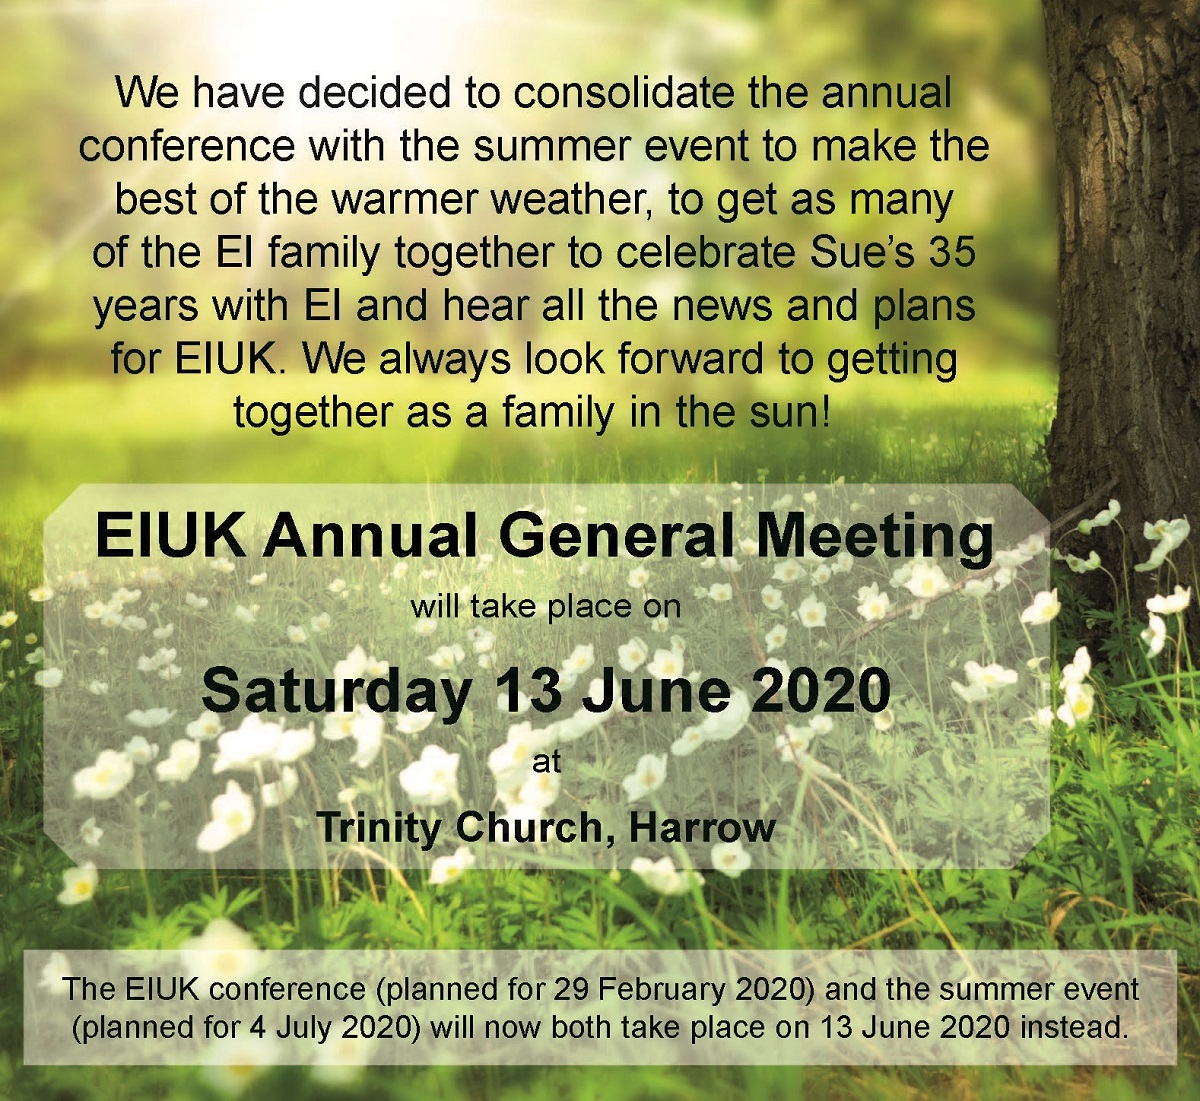 EIUK Annual General Meeting : 13 June 2020